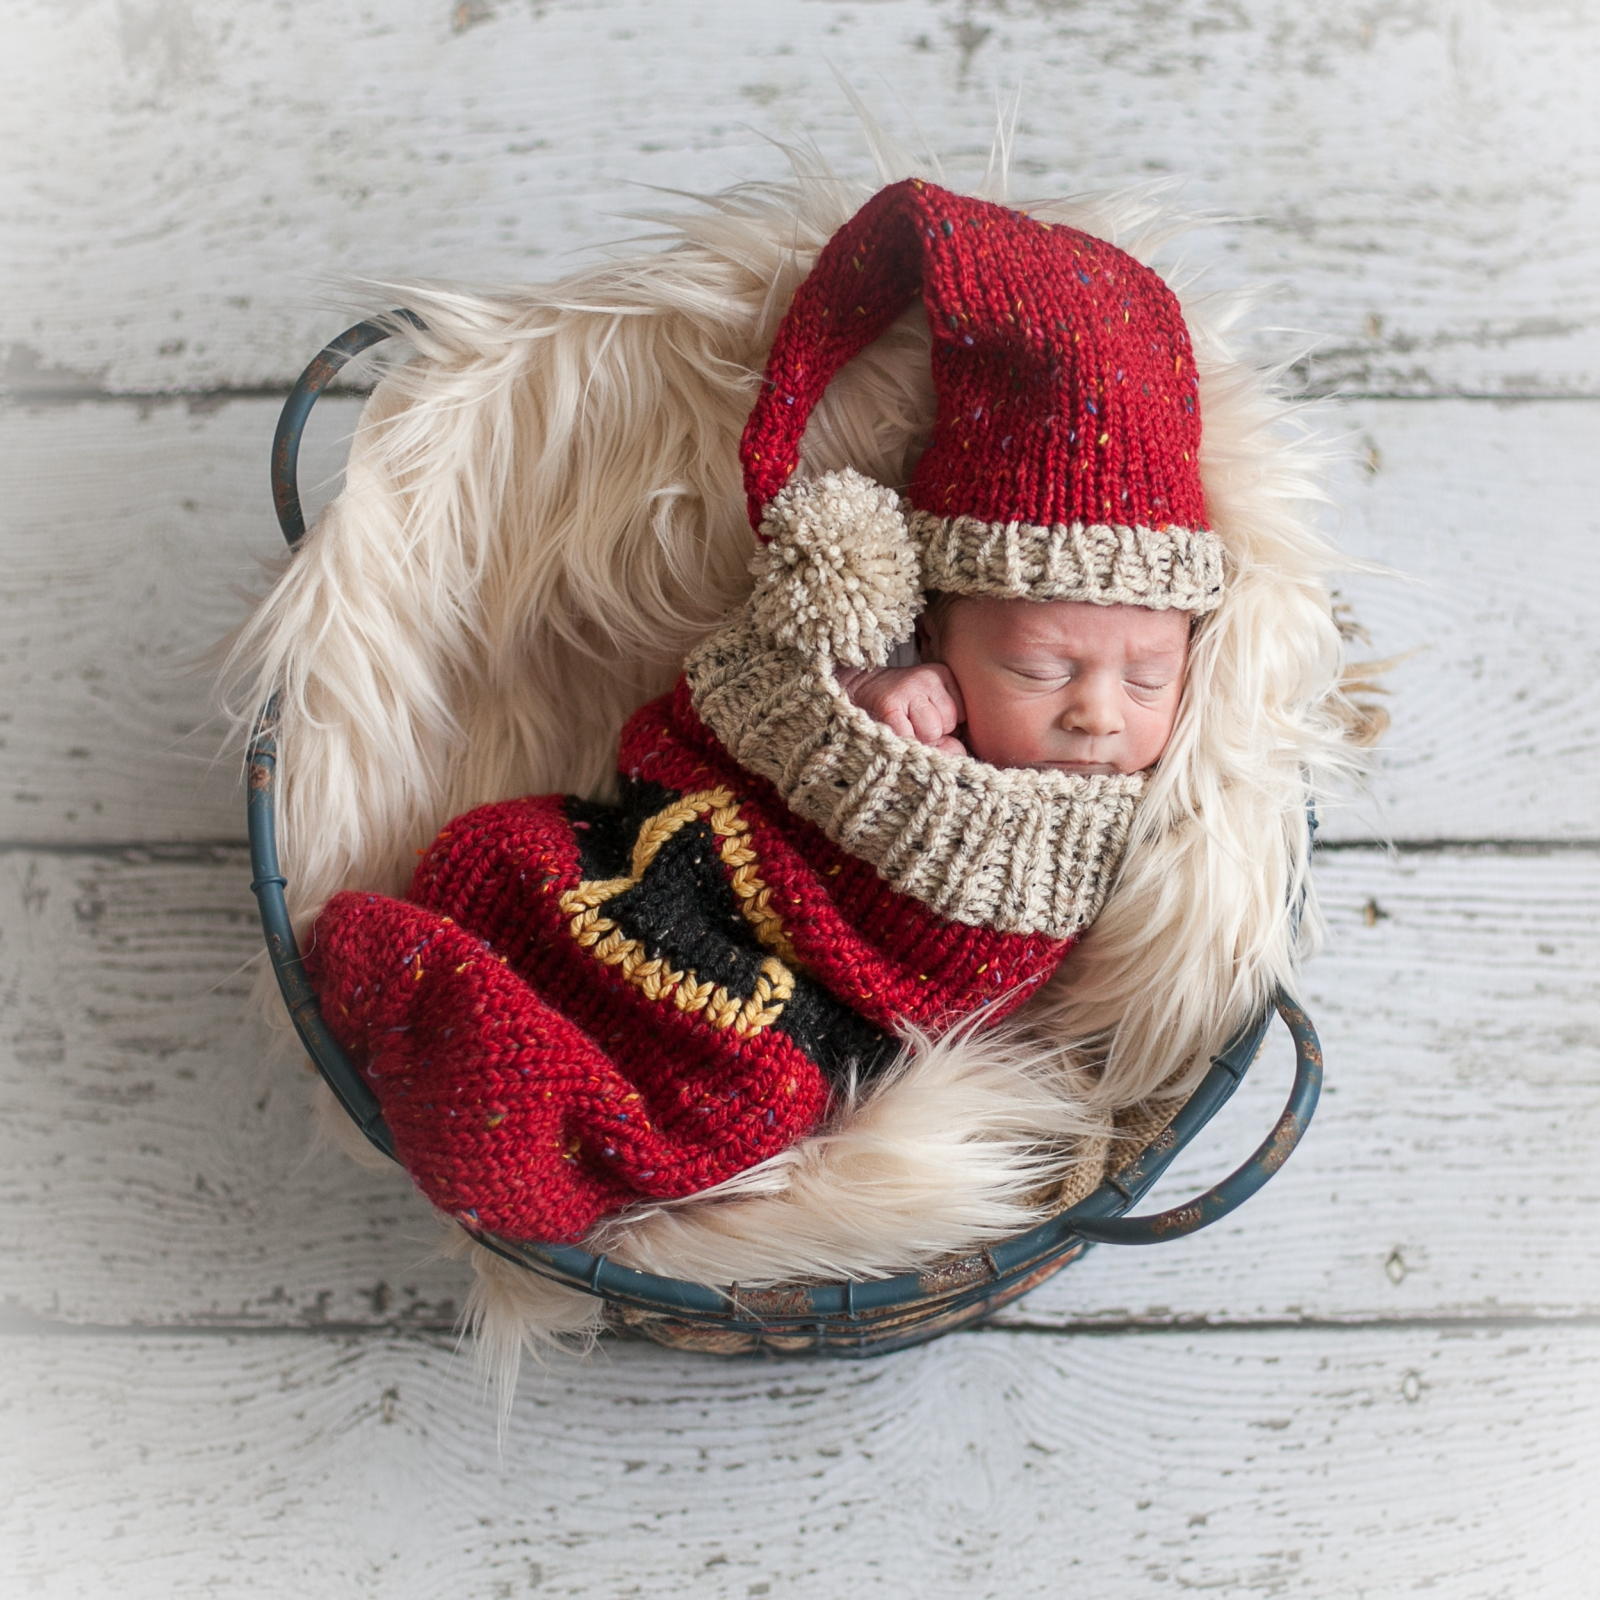 Loom knit christmas cocoon and santa hat pattern for newborn baby loom knit christmas cocoon and santa hat pattern for newborn baby bankloansurffo Images